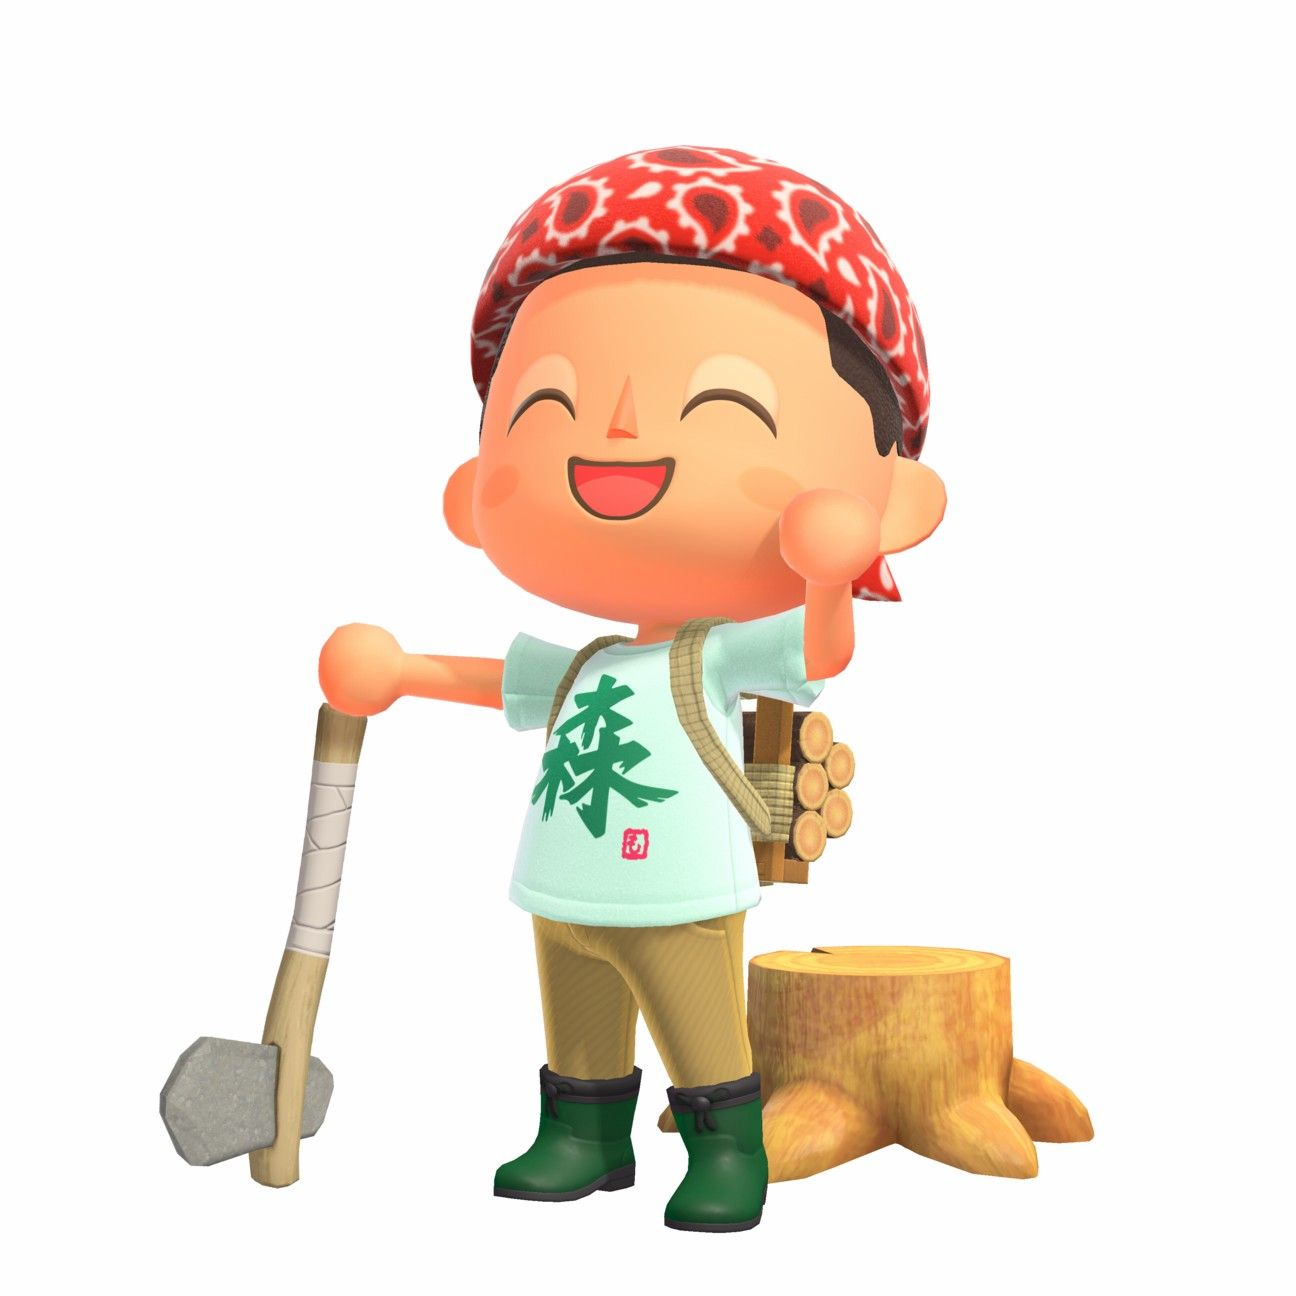 12+ How to get a flimsy shovel in animal crossing images